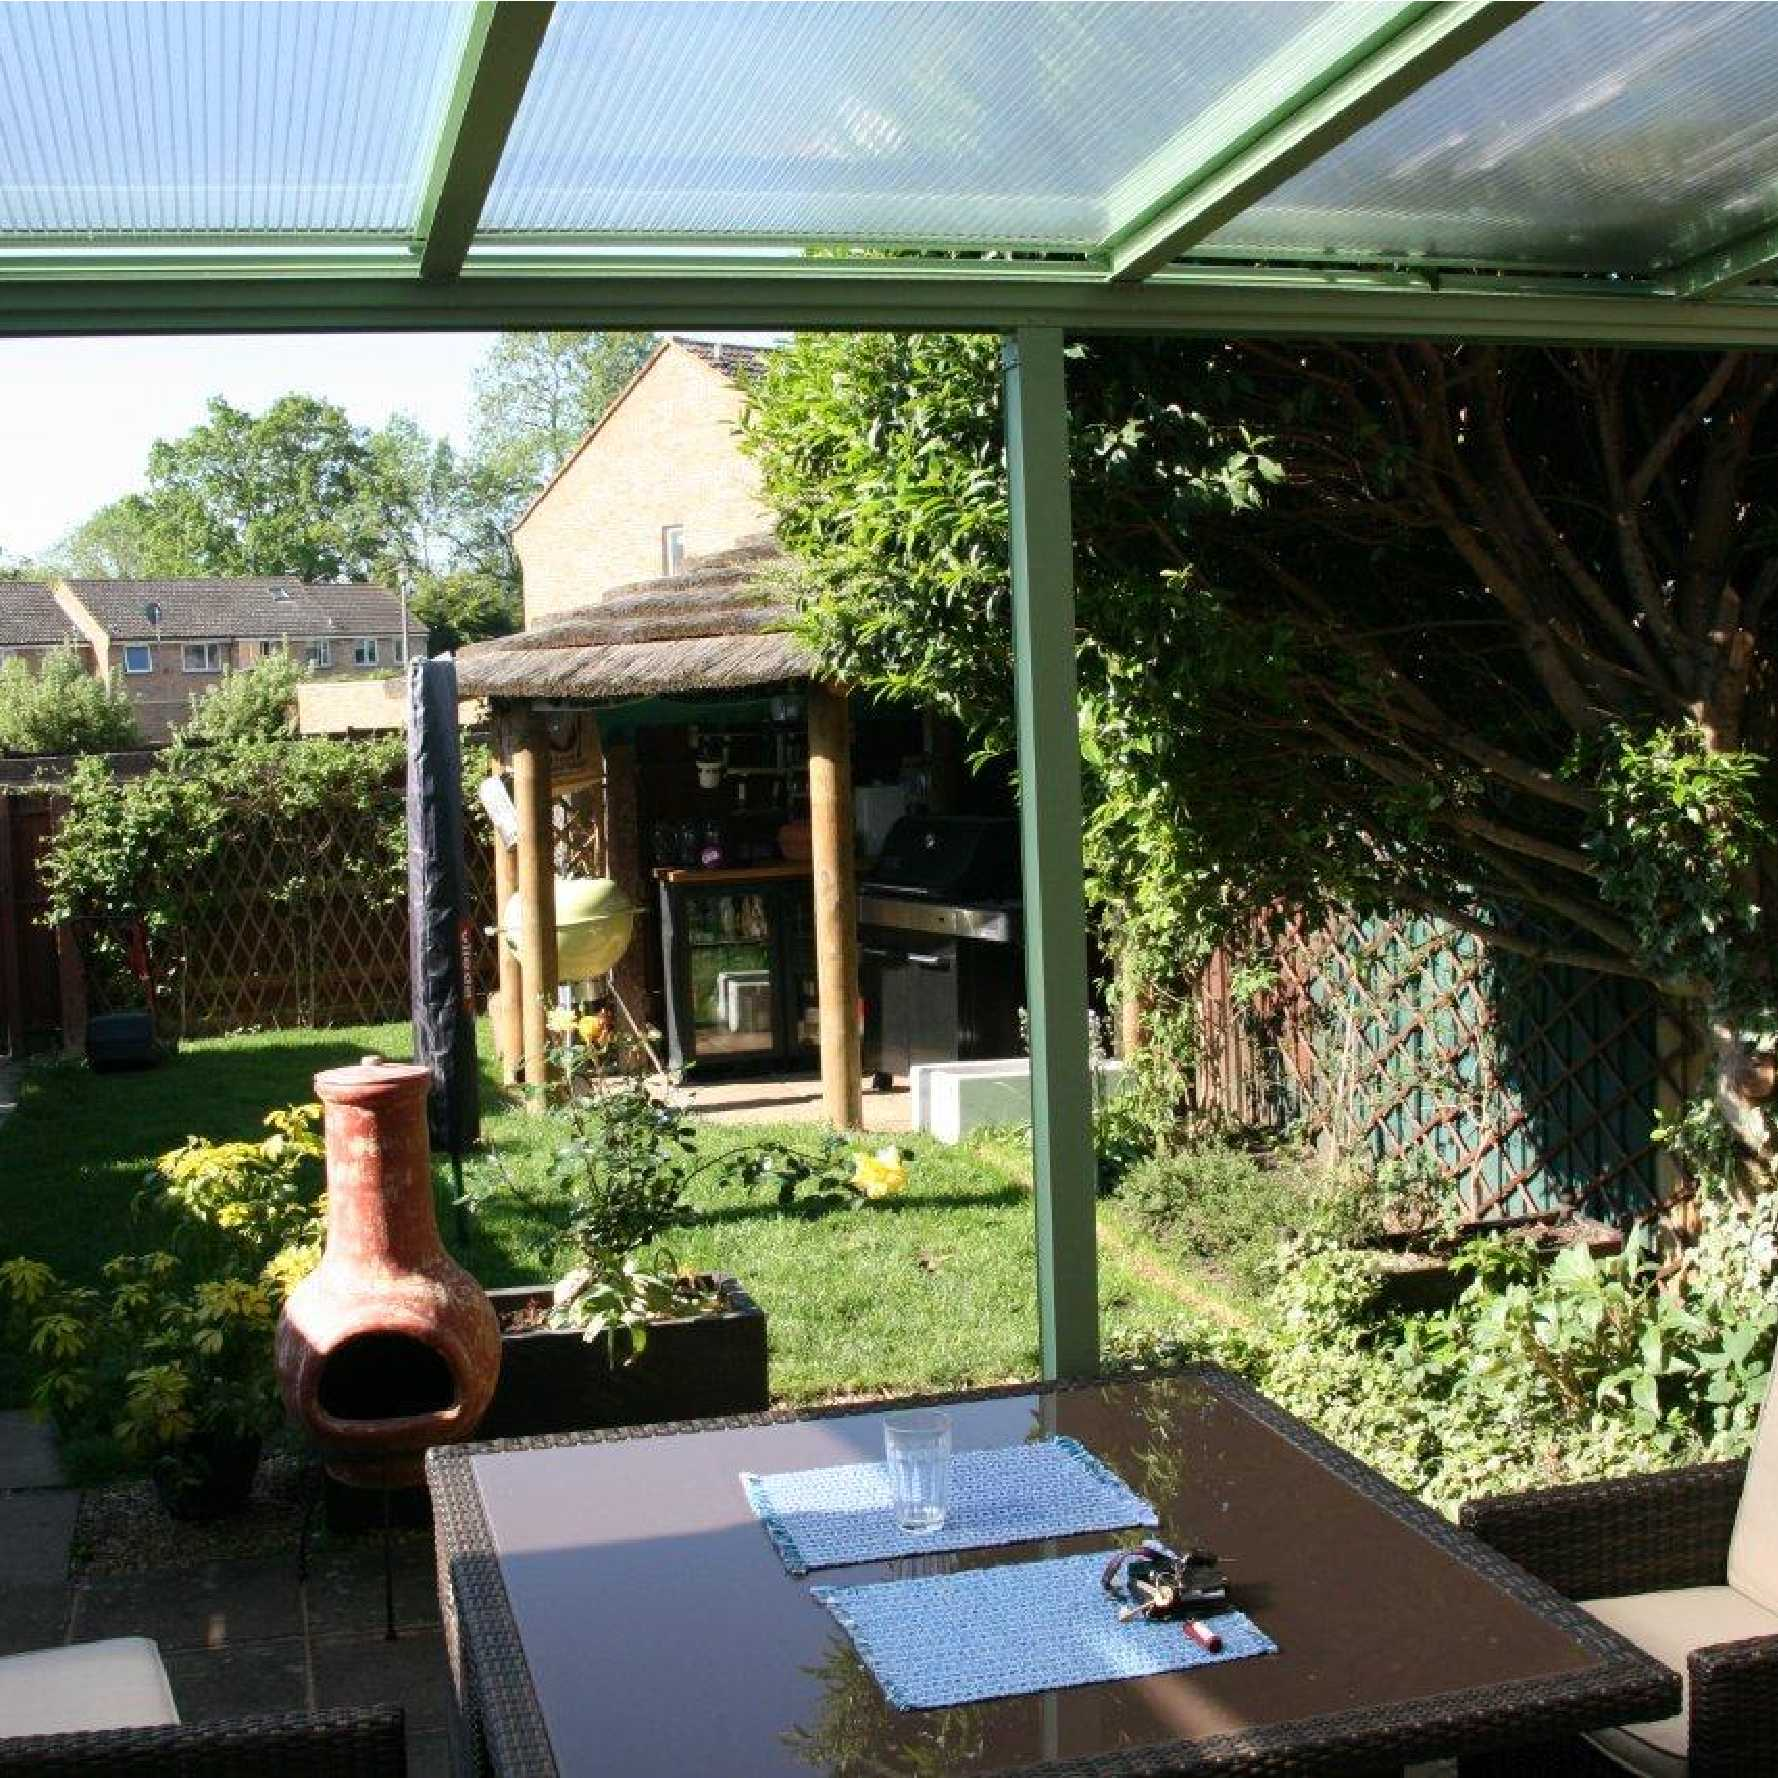 Affordable Omega Smart Lean-To Canopy with 16mm Polycarbonate Glazing - 7.8m (W) x 4.0m (P), (4) Supporting Posts